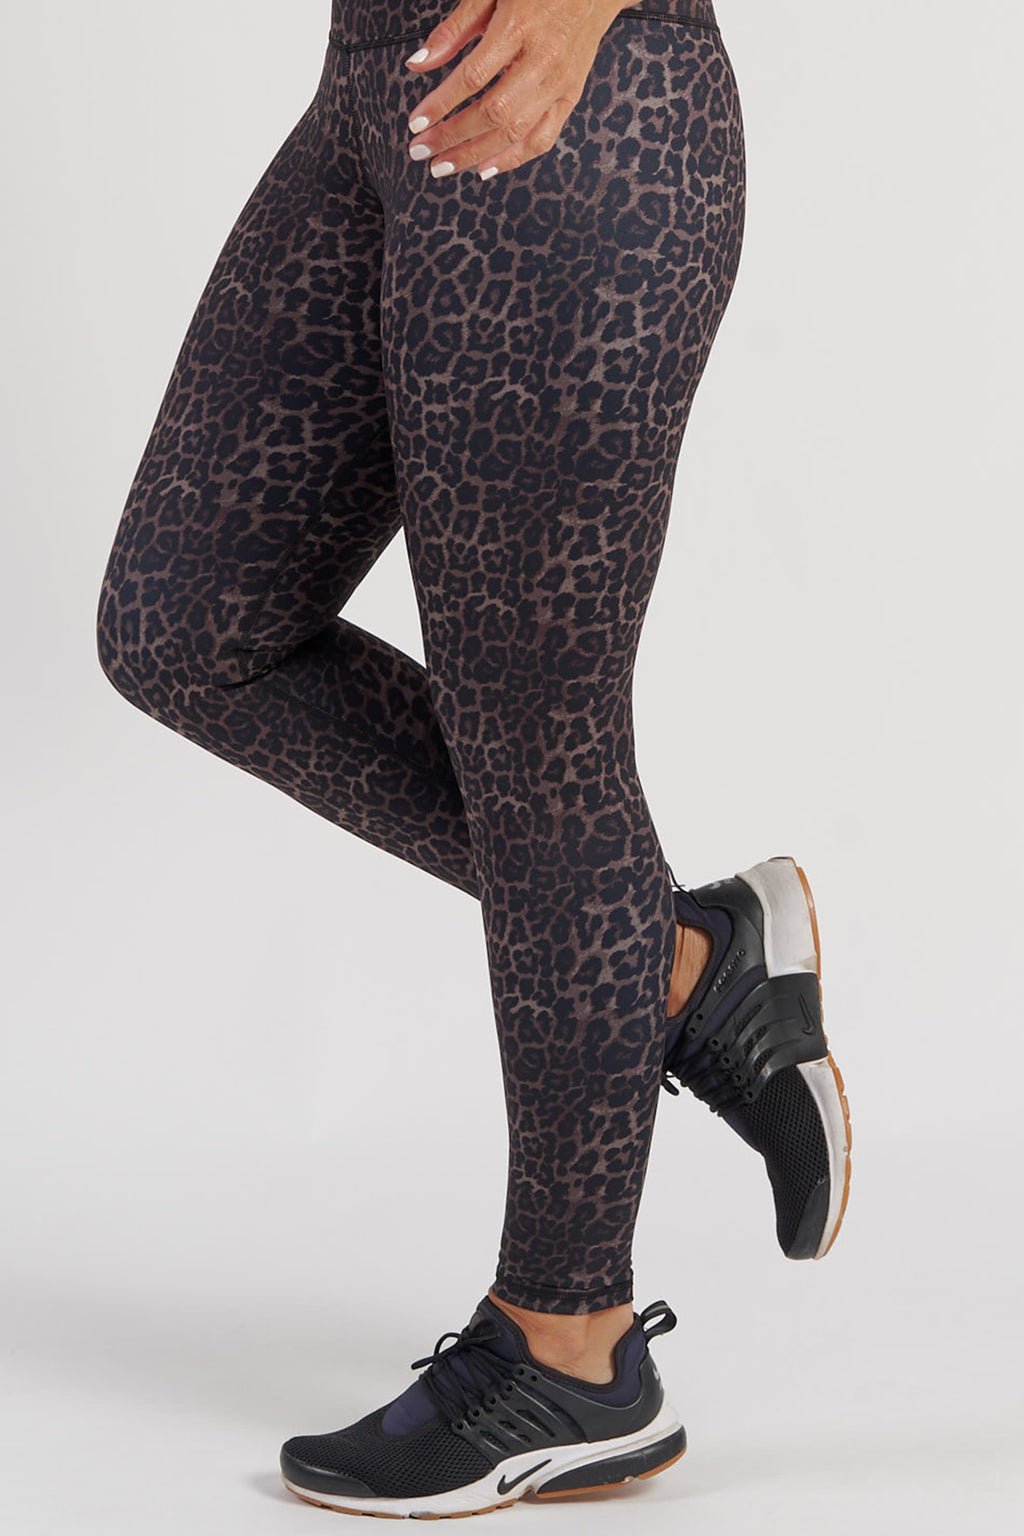 high-waisted-gym-tights-bronze-leopard-large-side